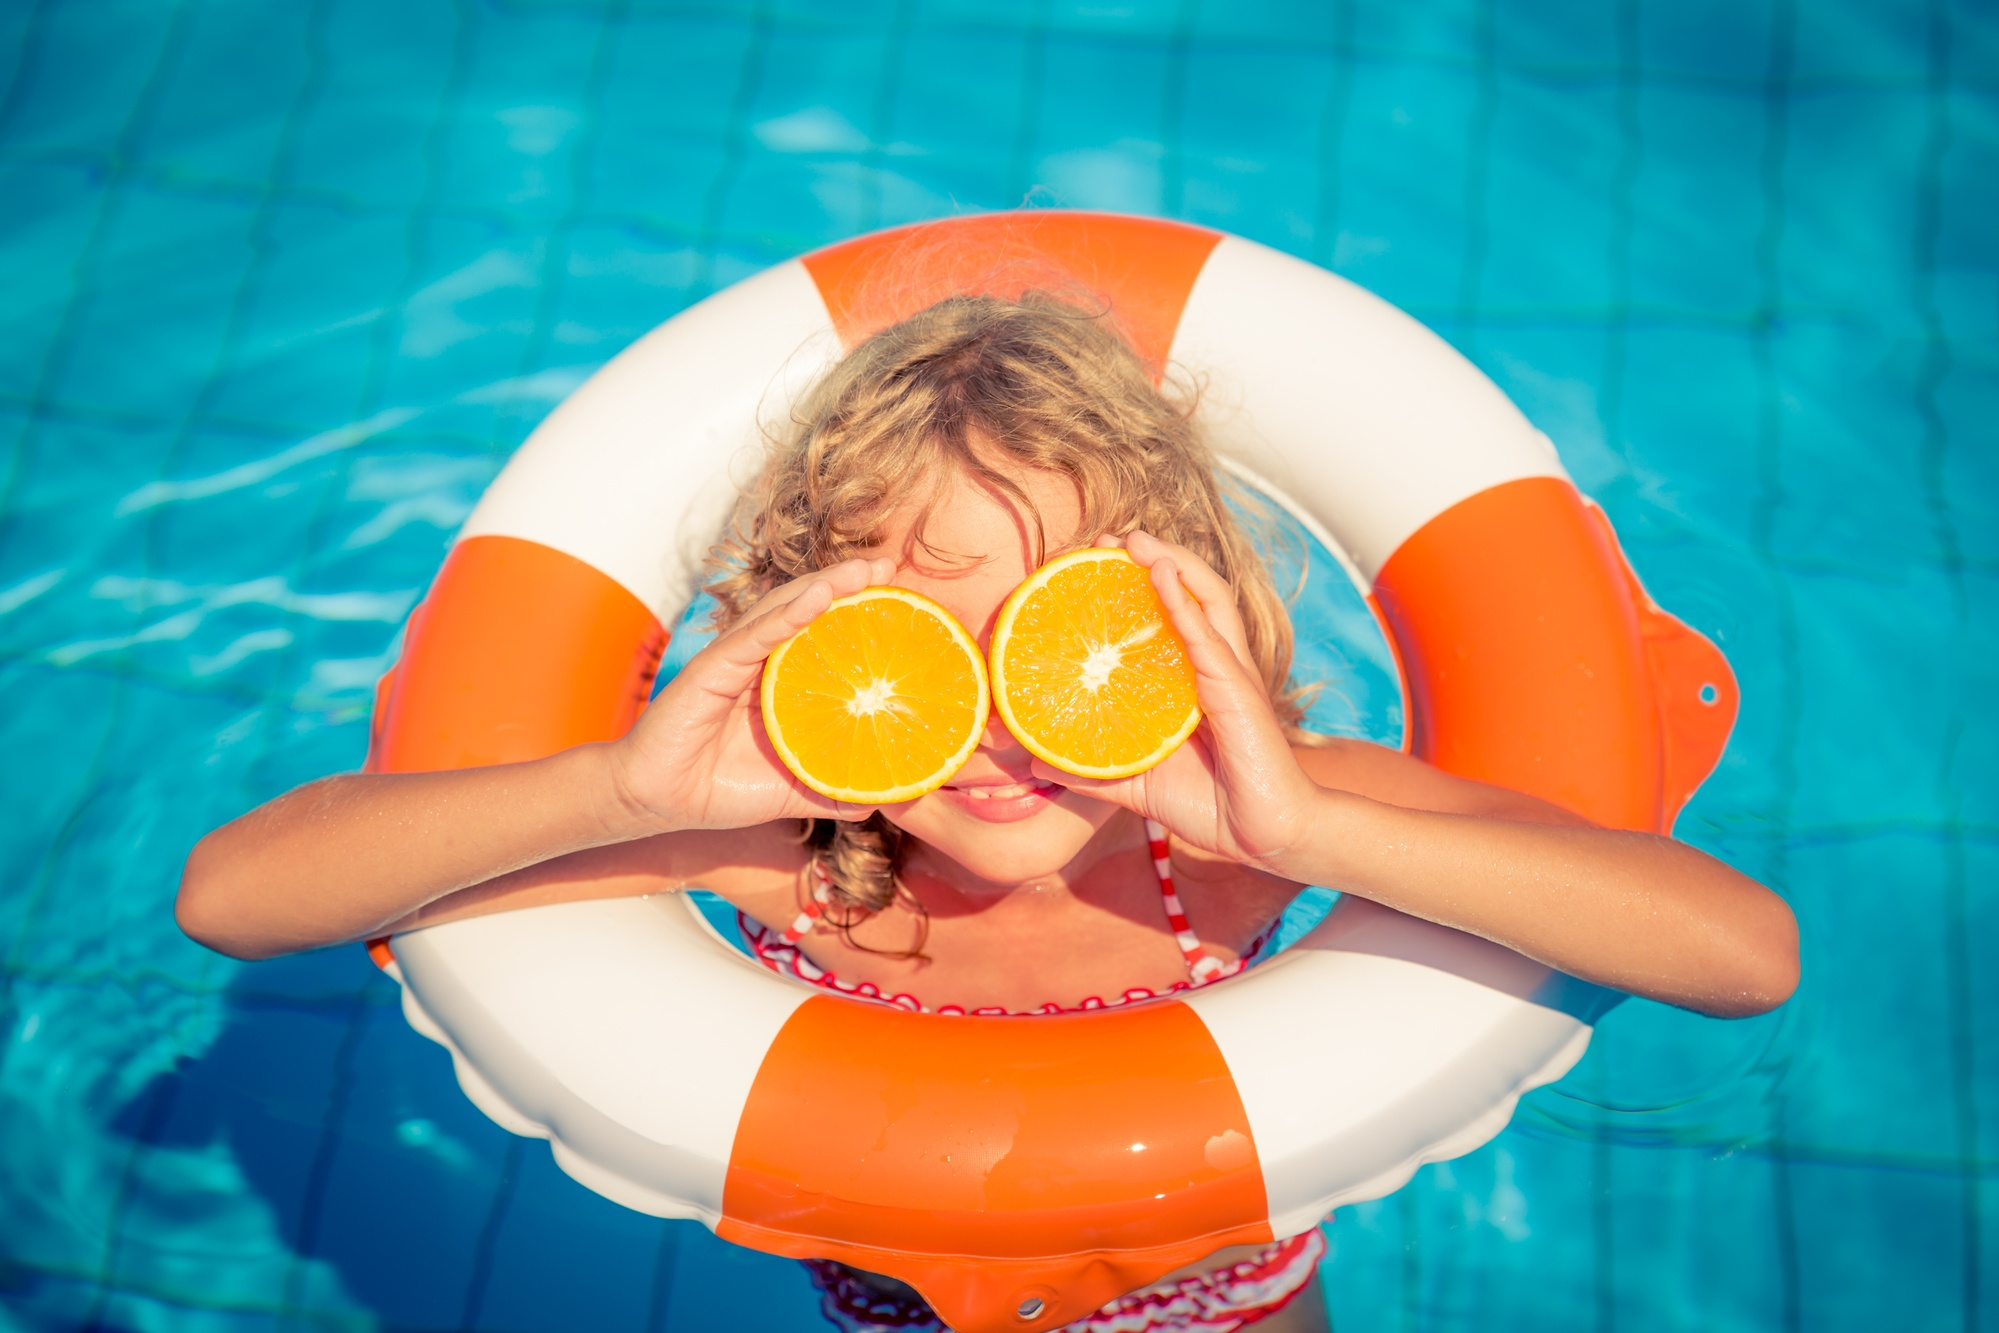 Make eating healthy fun when traveling with kids